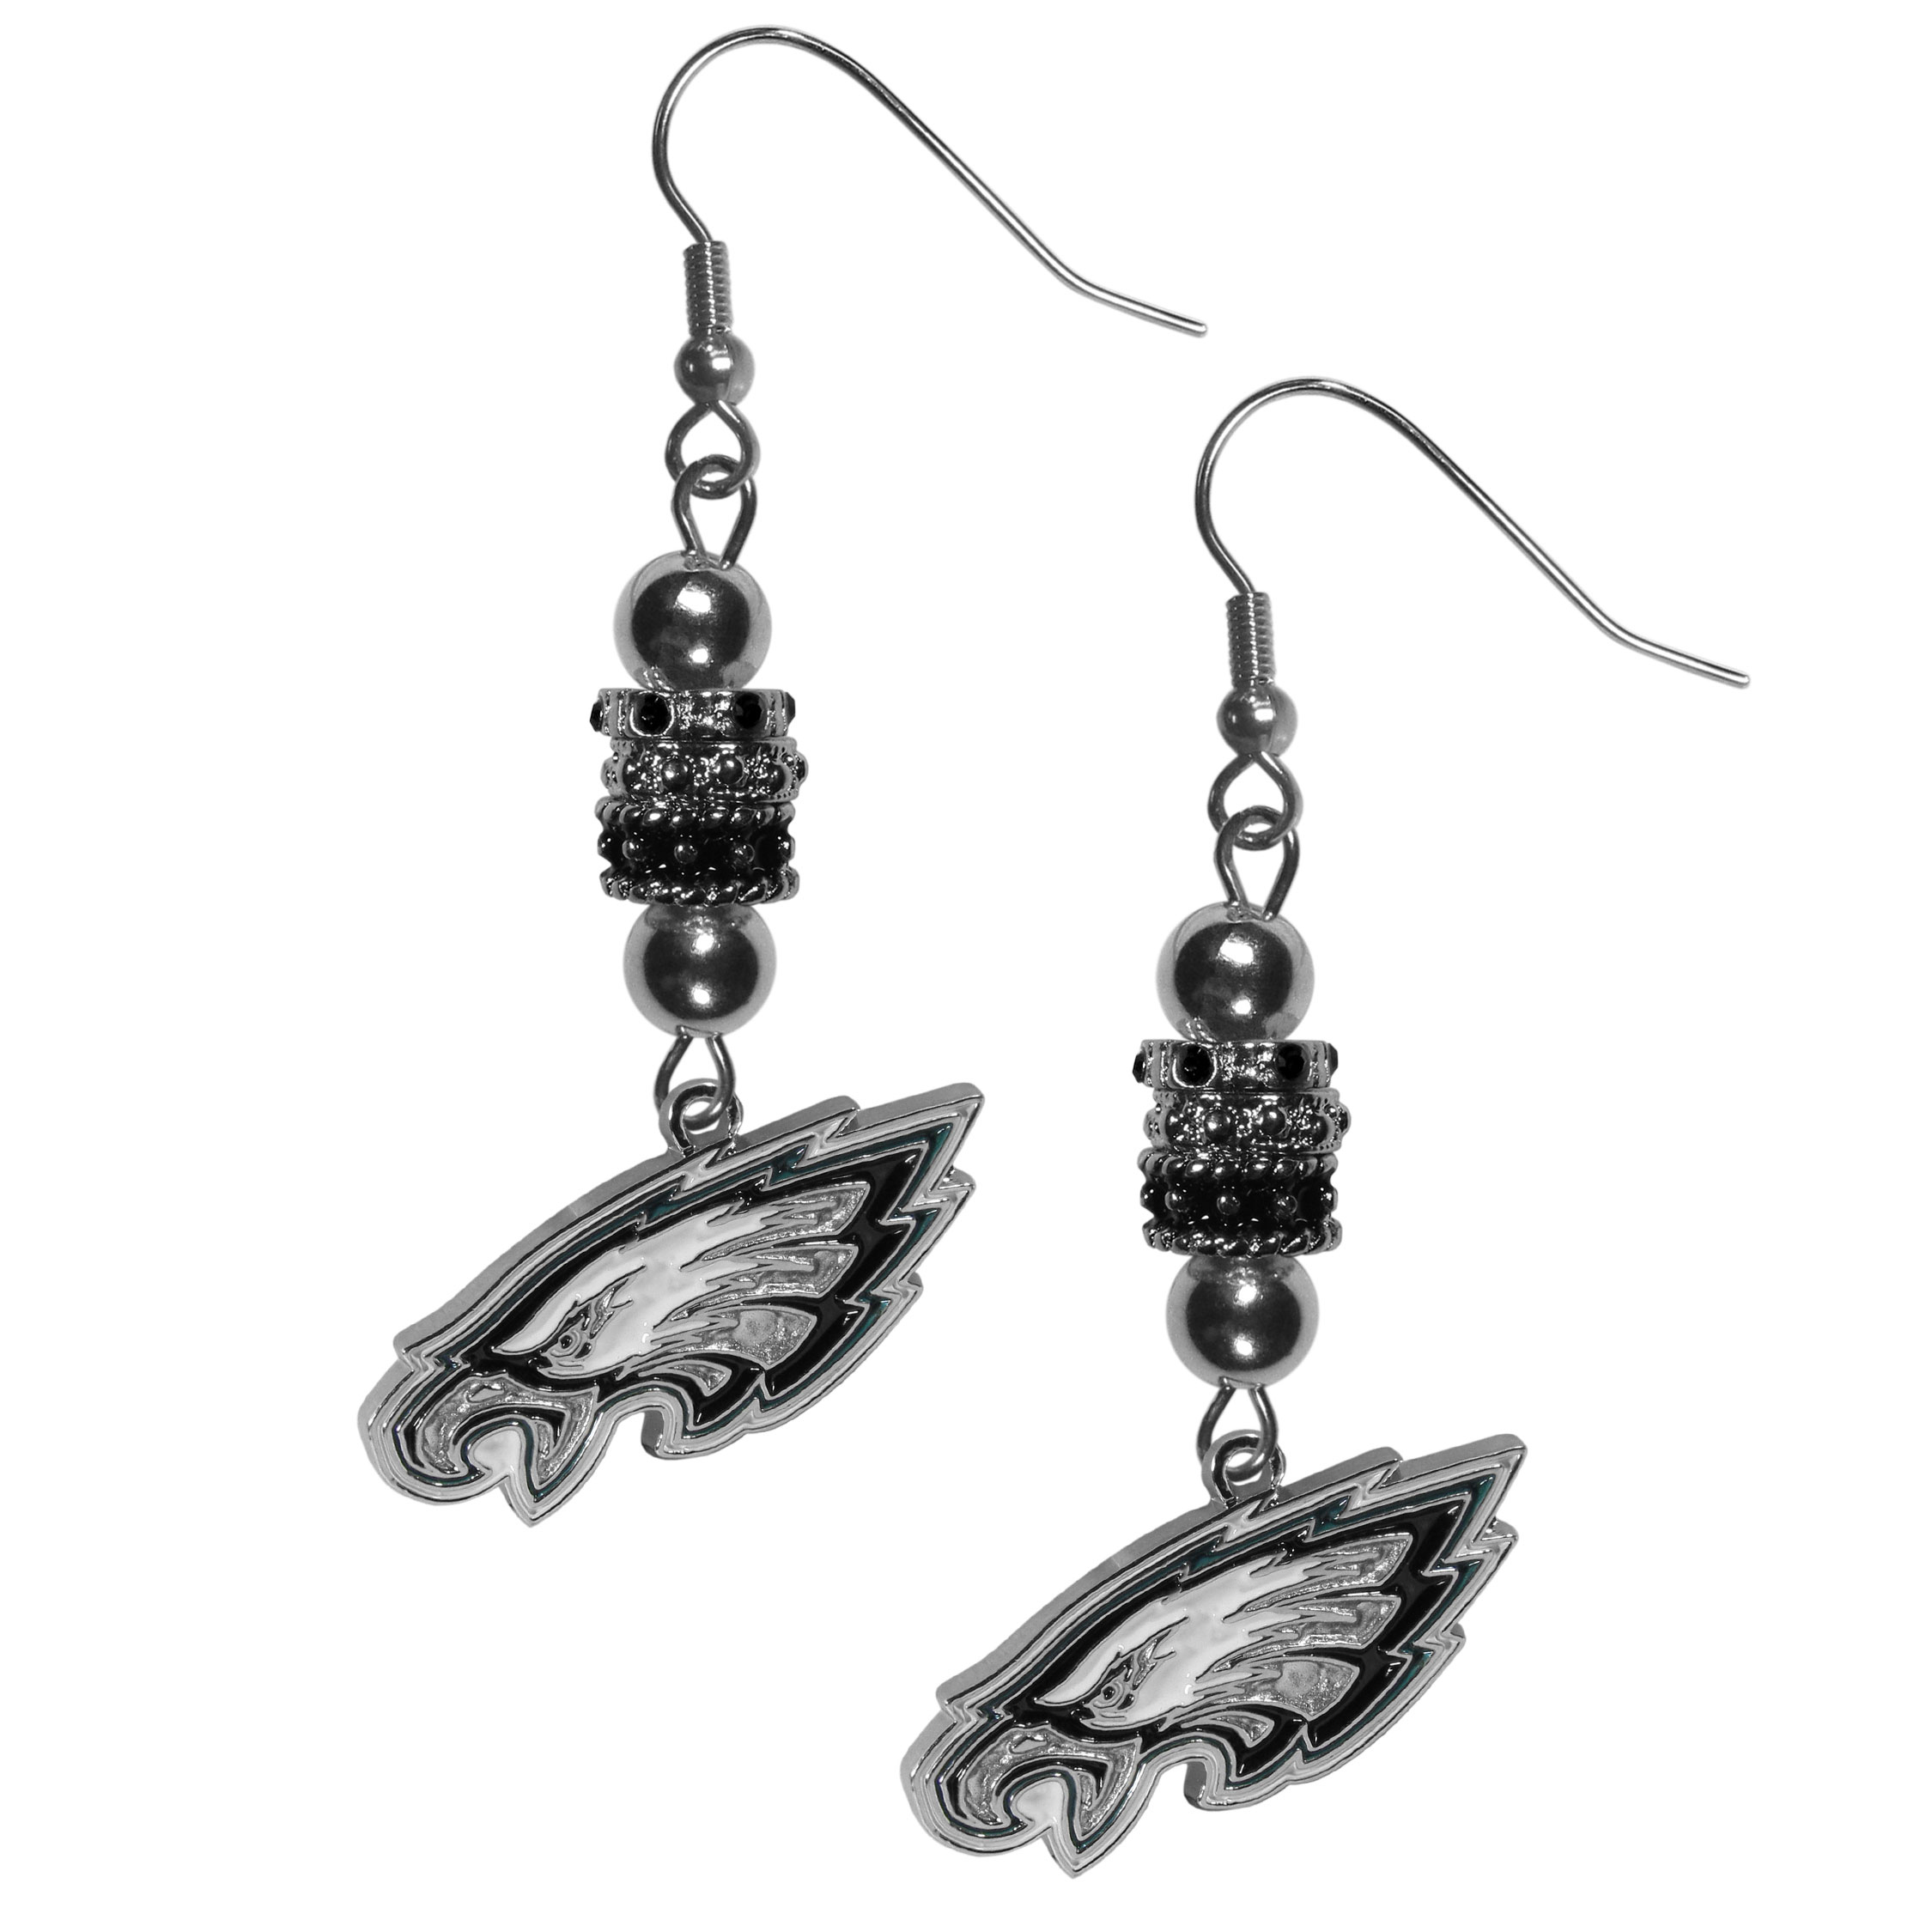 Philadelphia Eagles Euro Bead Earrings - These beautiful euro style earrings feature 3 euro beads and a detailed Philadelphia Eagles charm on hypoallergenic fishhook posts.